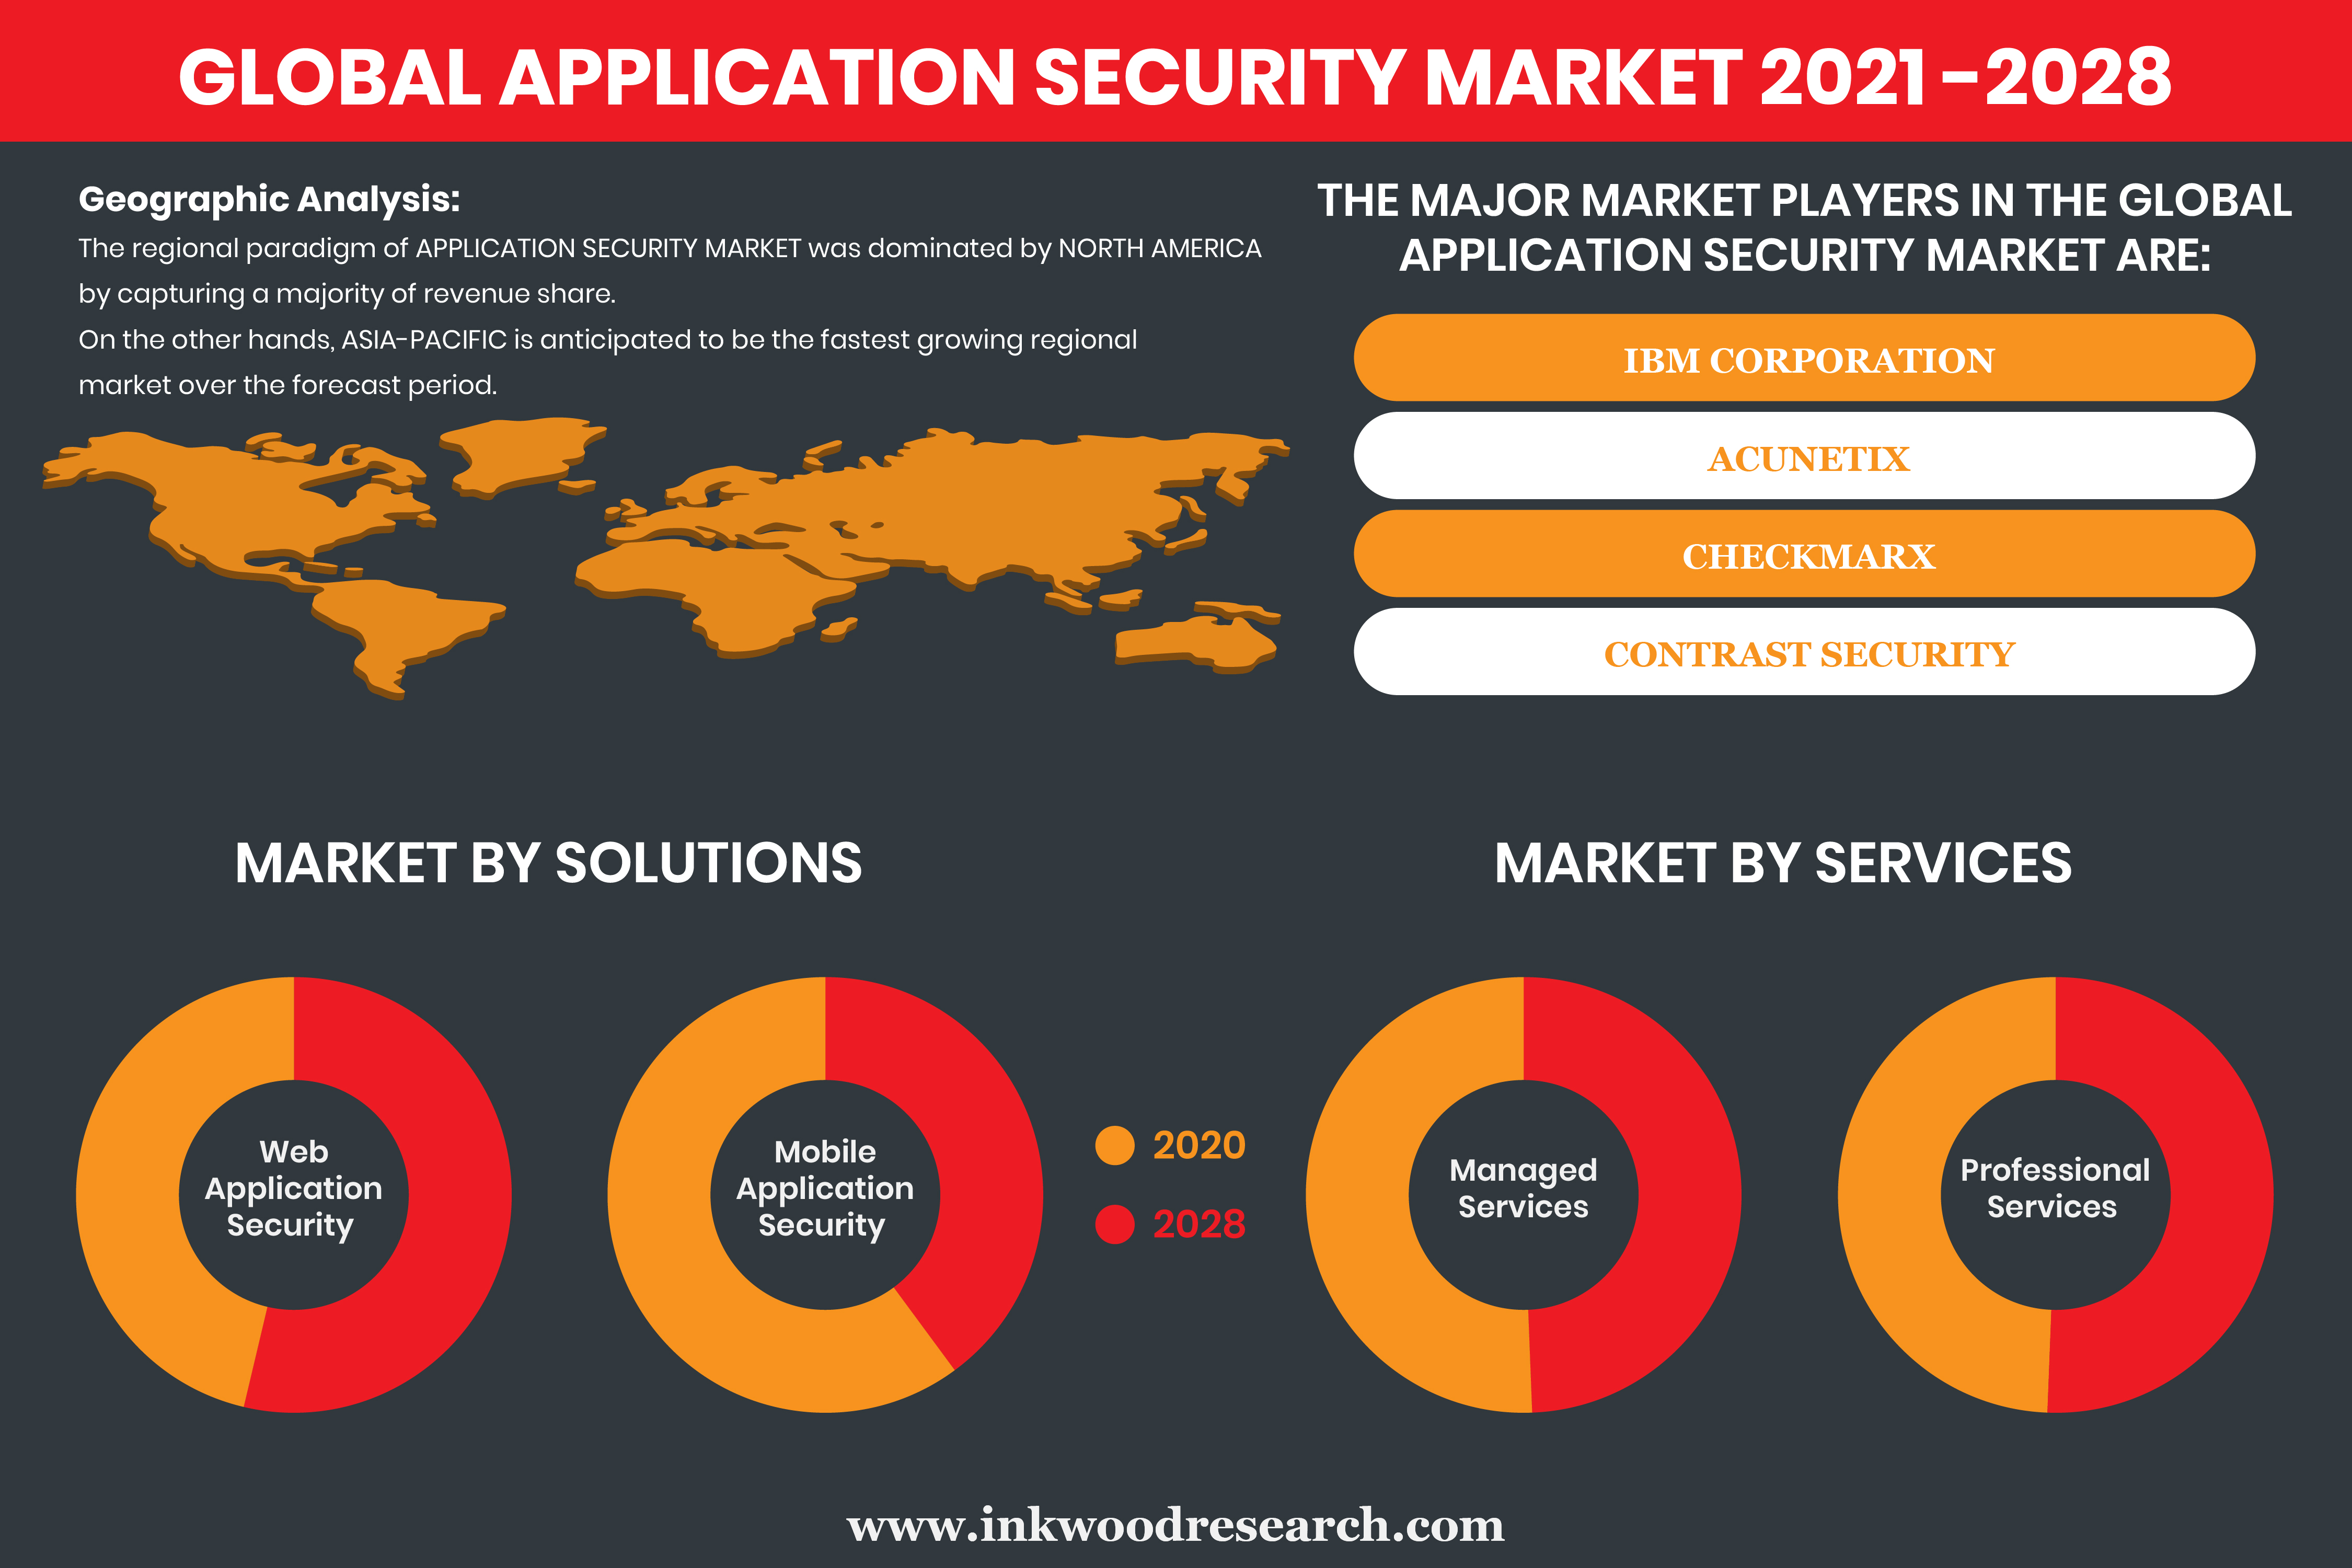 Outsourcing IT Models to Push the Global Application Security Market